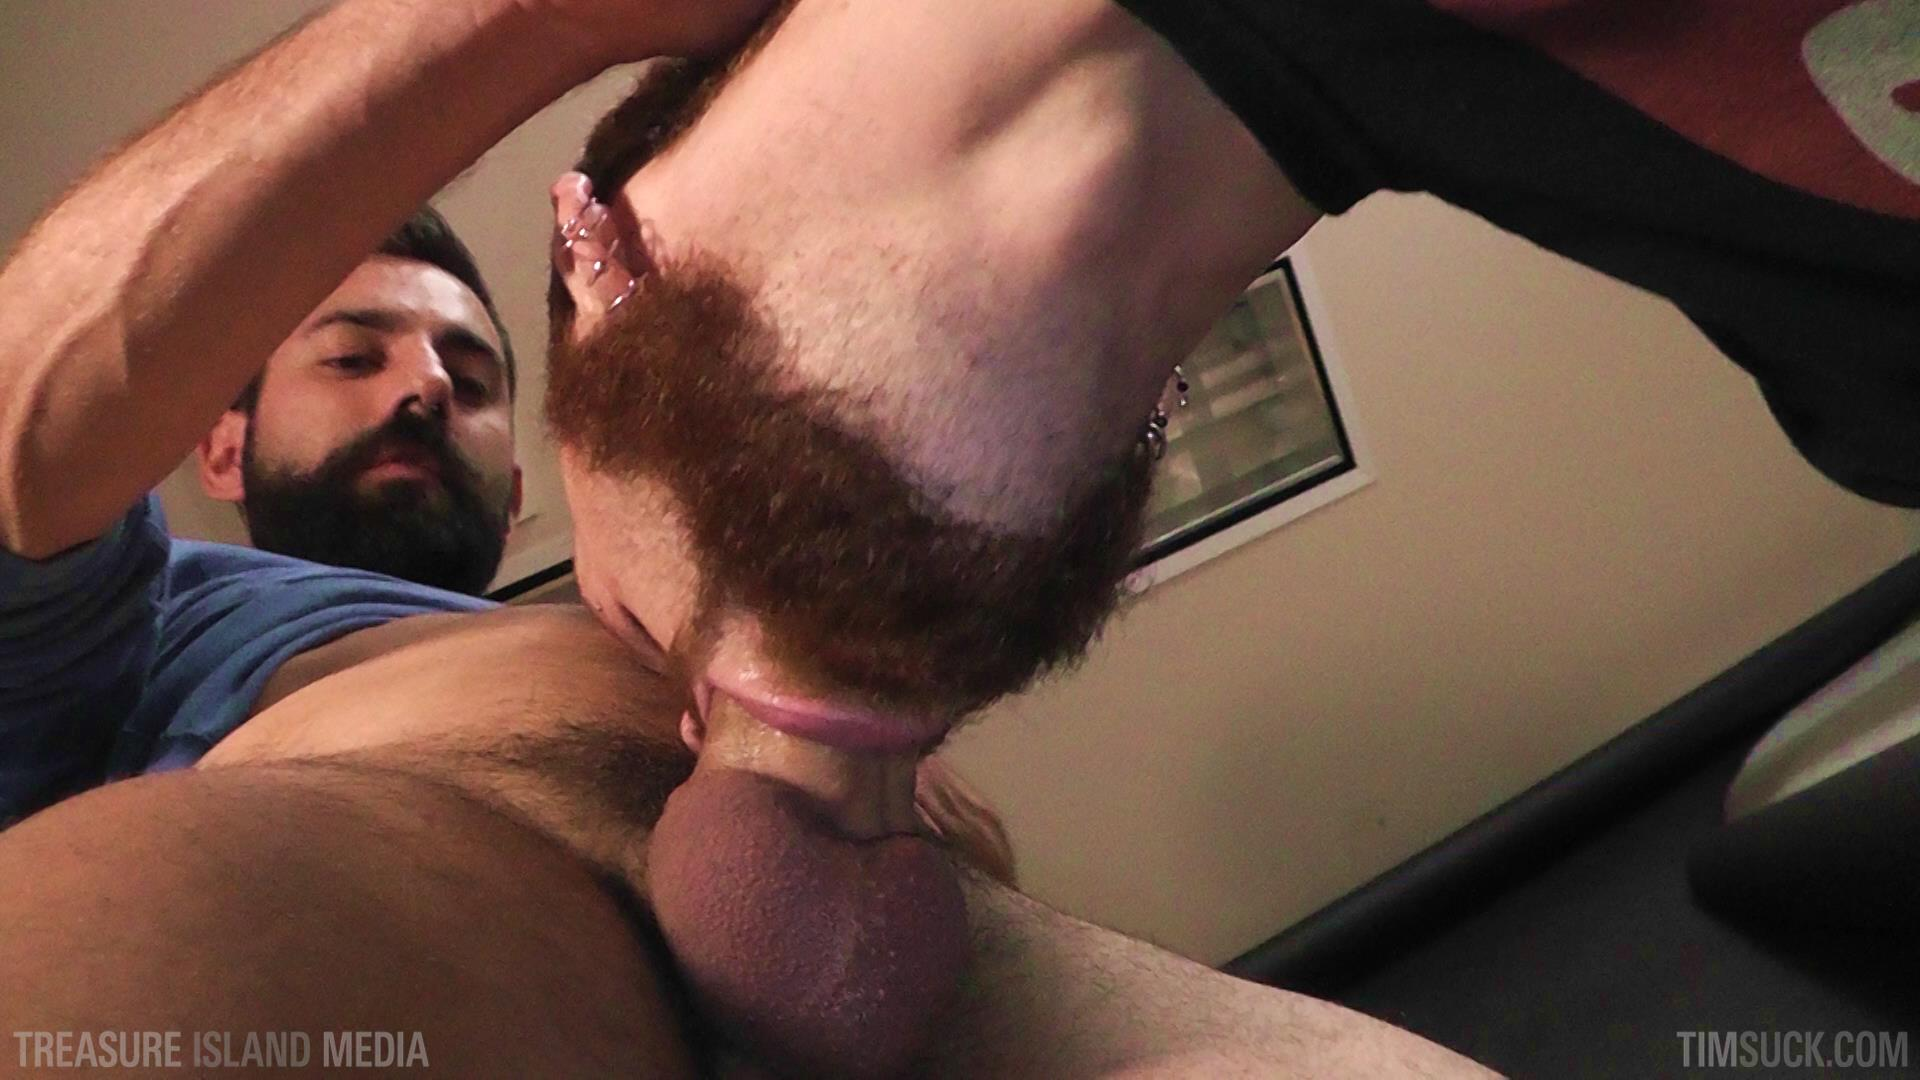 Treasure-Island-Media-TimSuck-Pete-Summers-and-Dean-Brody-Sucking-A-Big-Uncut-Cock-Amateur-Gay-Porn-01 Bearded Ginger Services A Big Uncut Cock And Eats The Cum